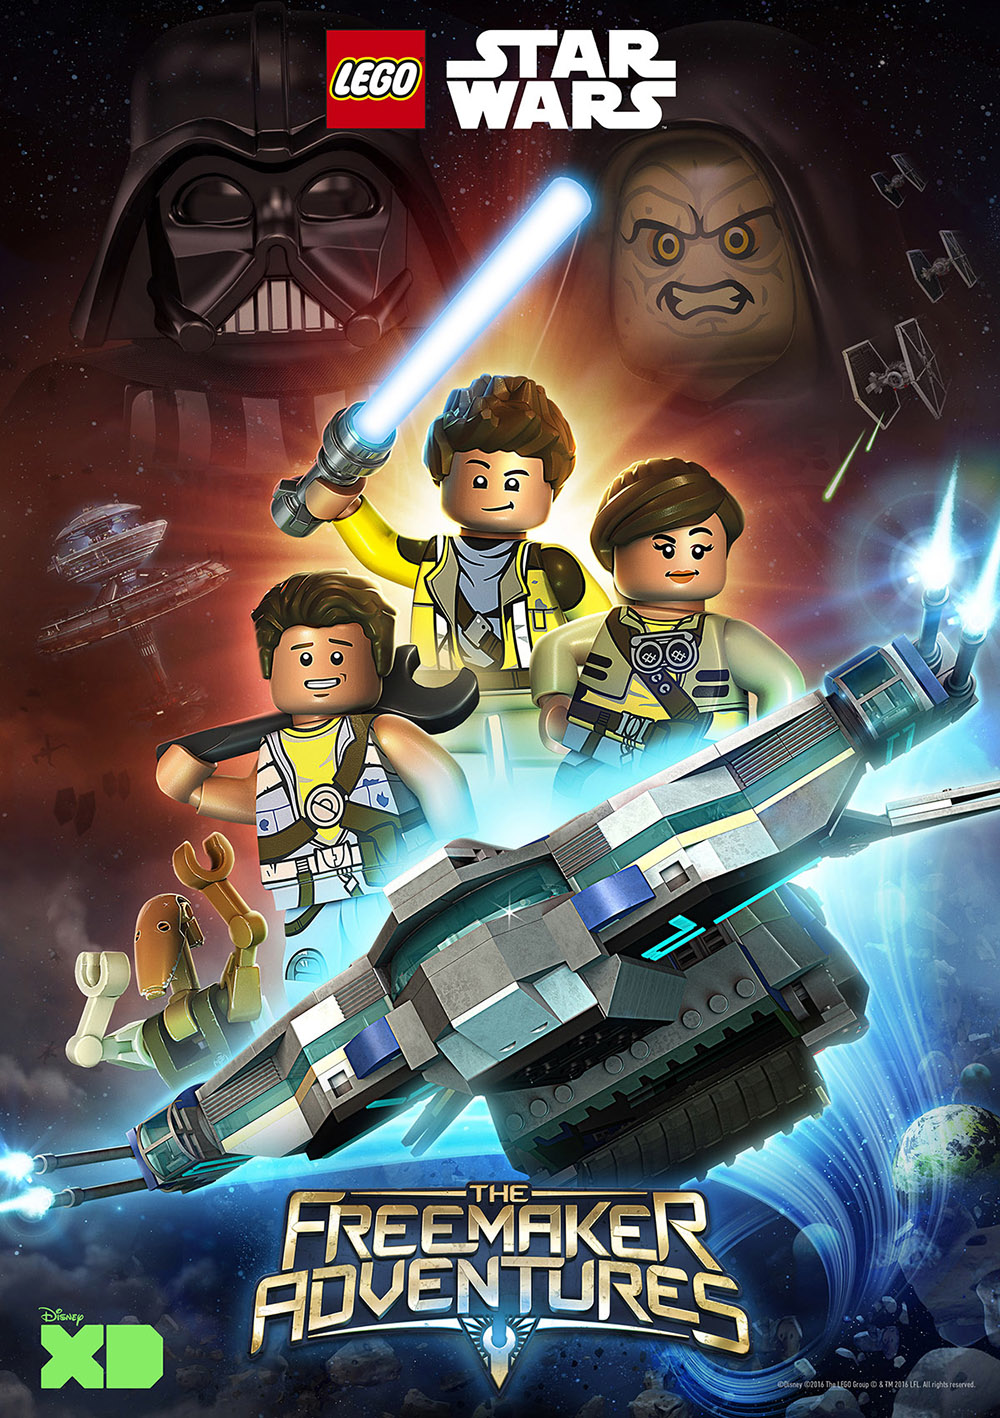 LEGO Star Wars: As Aventuras dos Freemaker